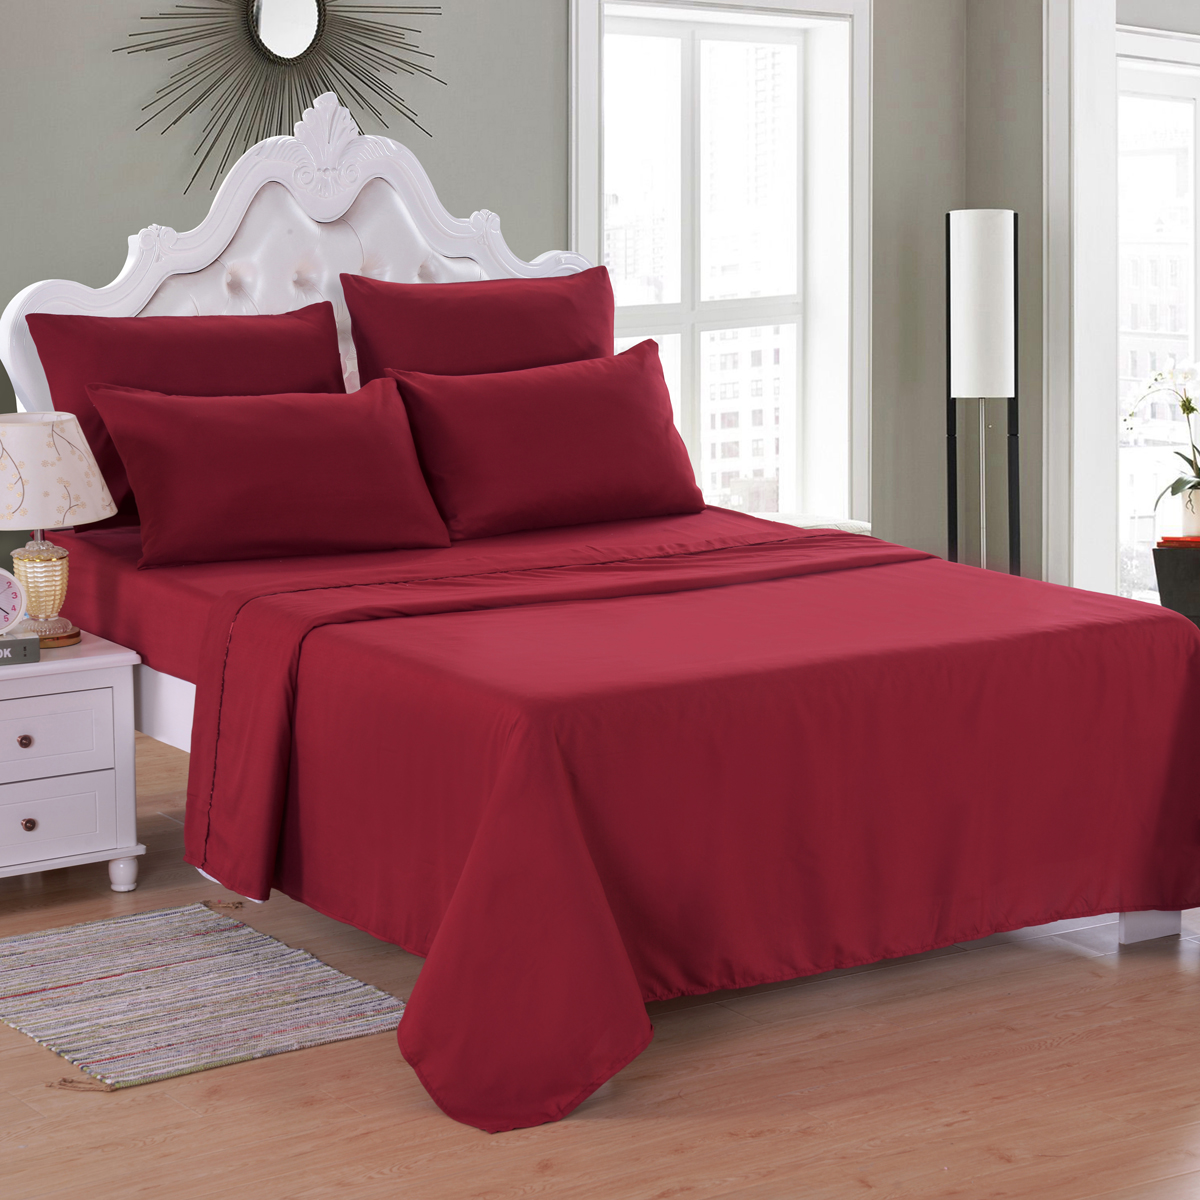 NEW SOFT WRINKLE FREE COTTON FEEL BED SHEETS SET DEEP POCKET KING SIZE RED !